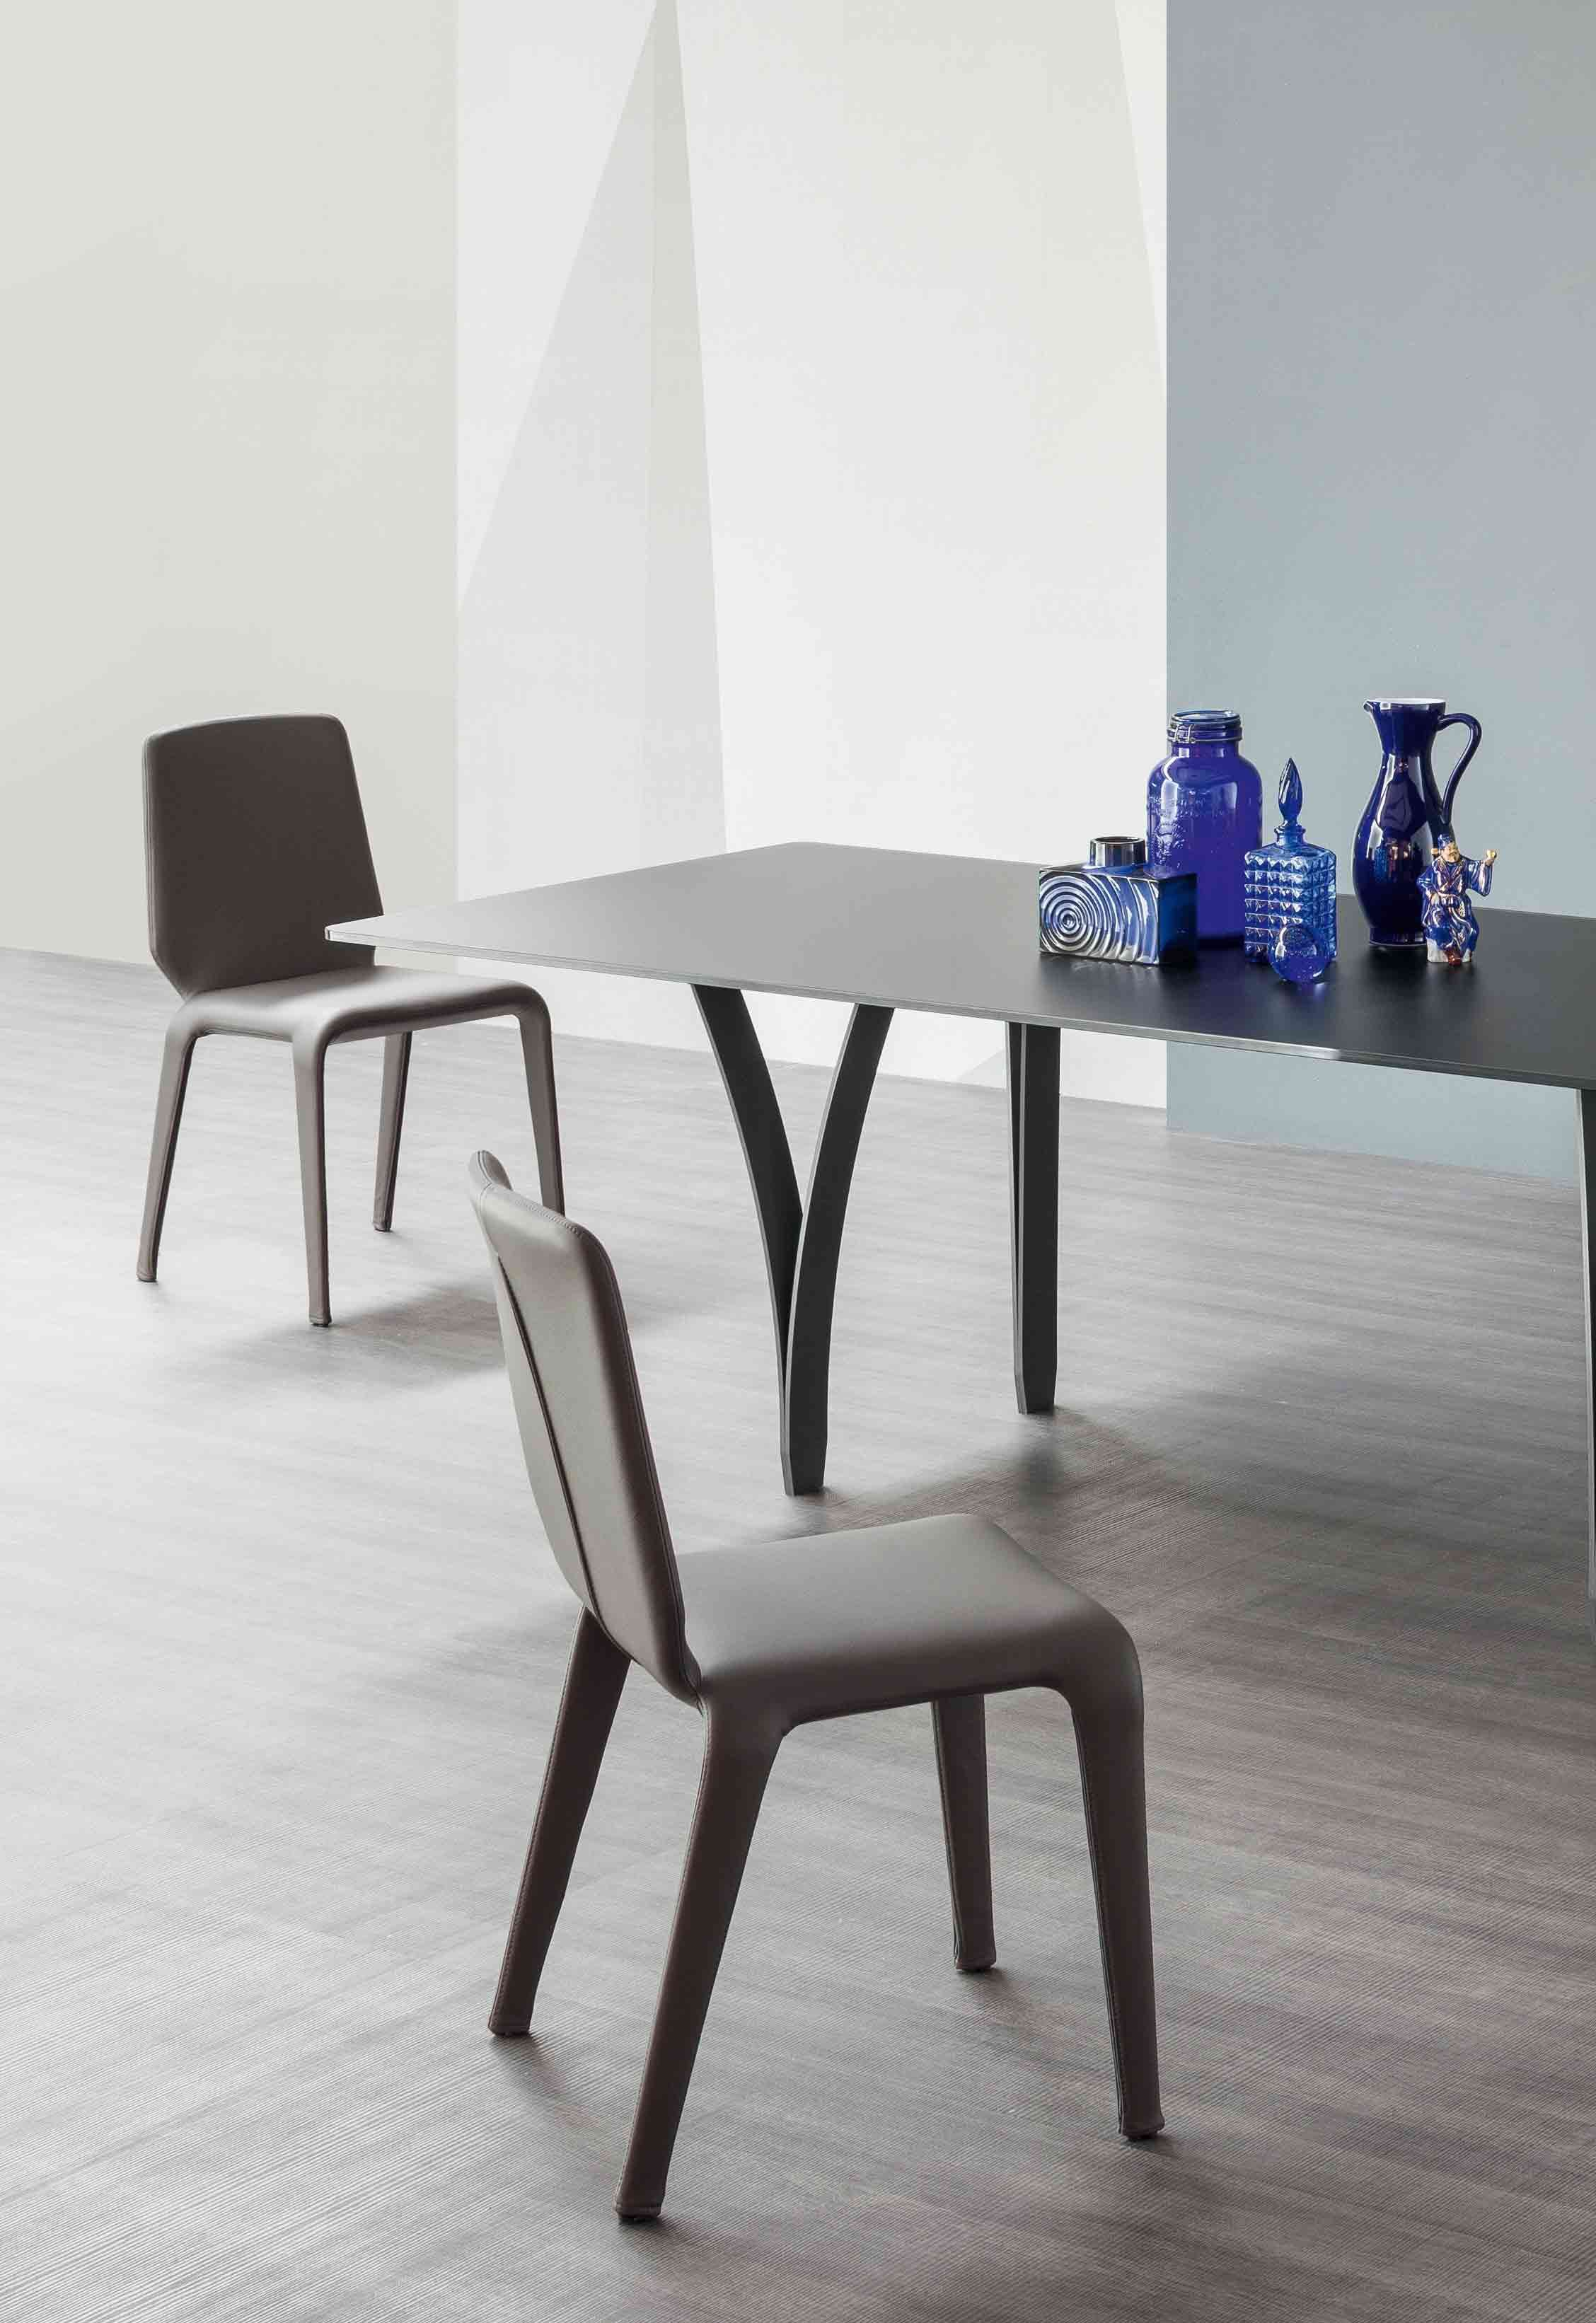 gap table design alain gilles junan chair bartoli design by